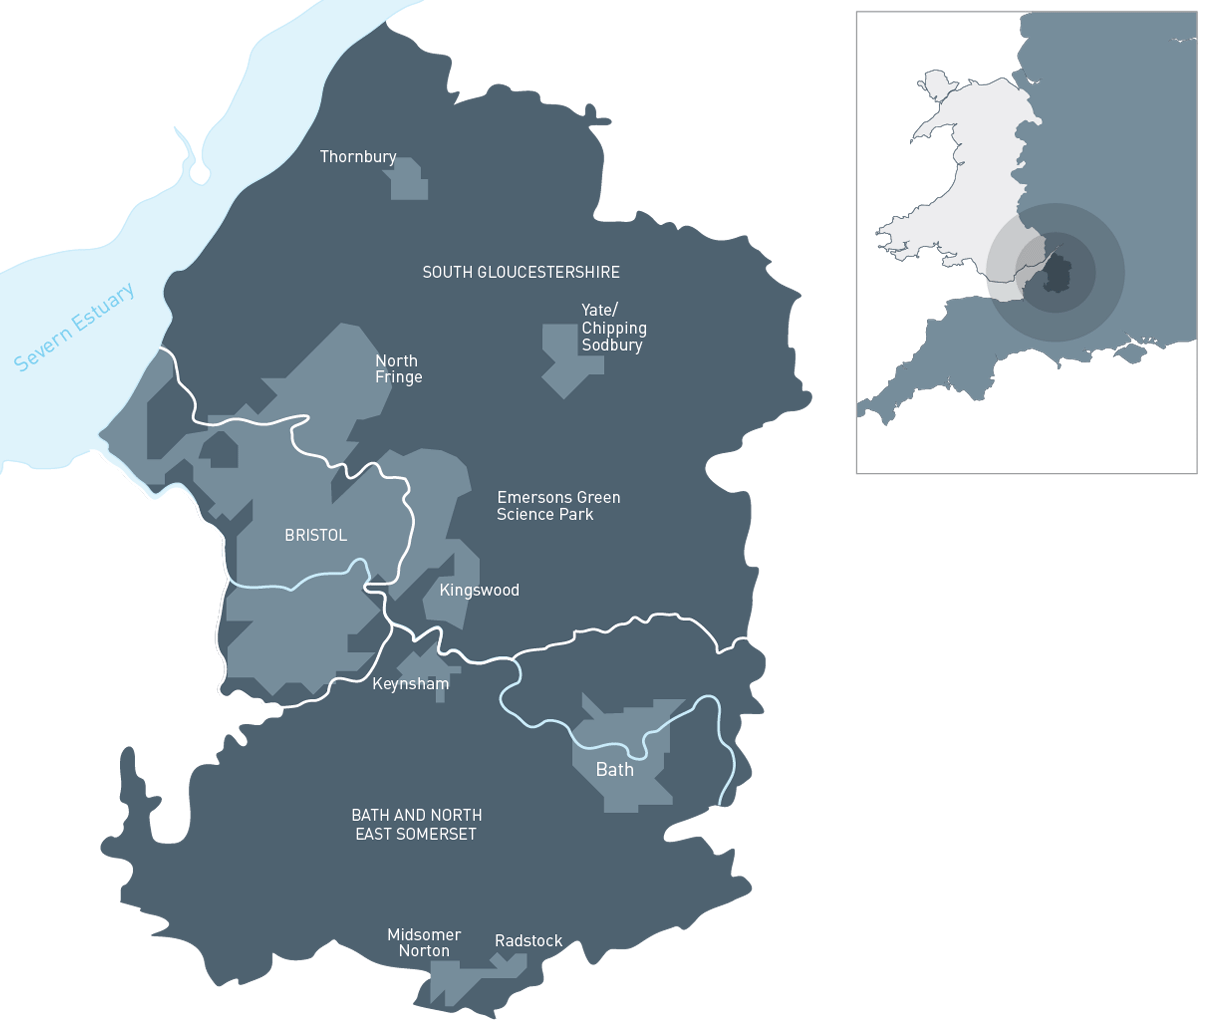 About us - West of England Combined Authority